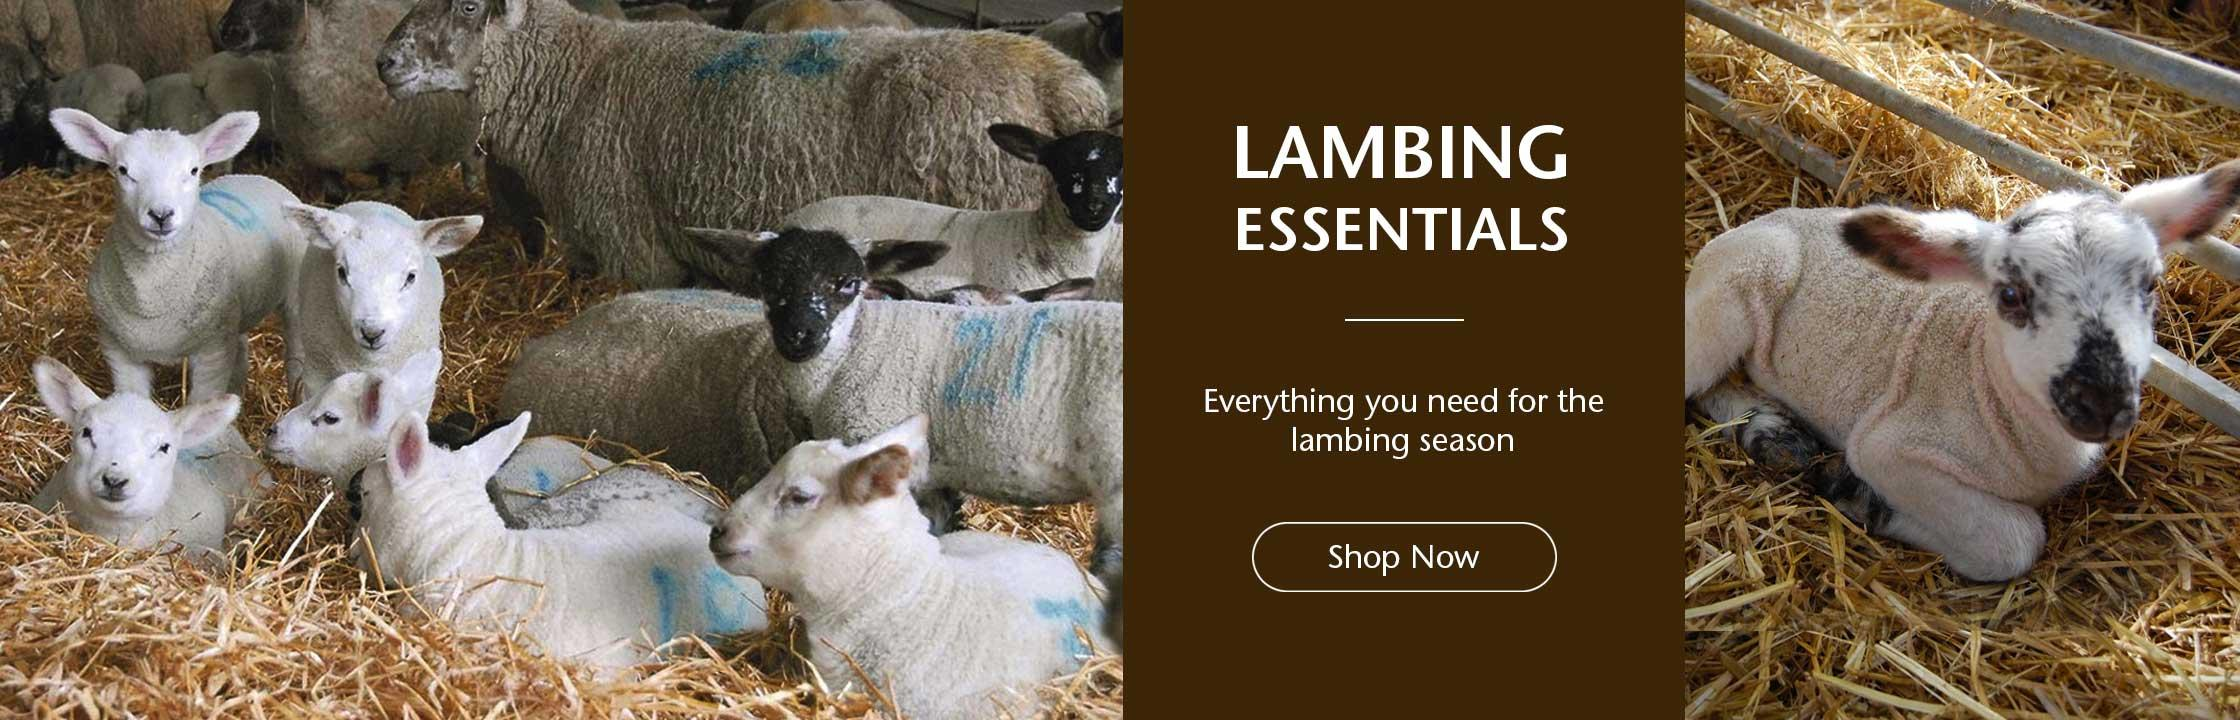 Lambing Essentials